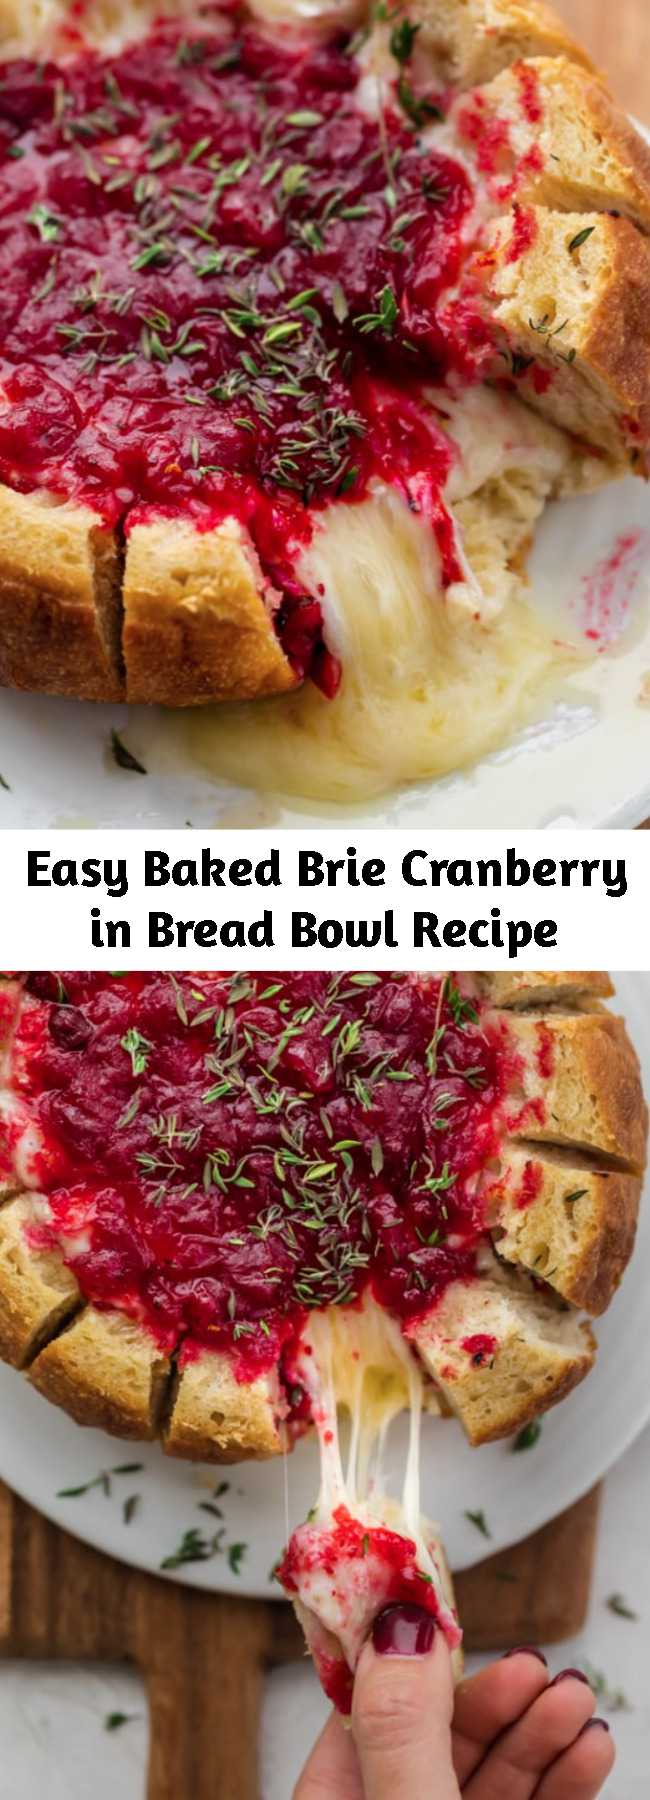 Easy Baked Brie Cranberry in Bread Bowl Recipe - For your Thanksgiving, Christmas and any holiday parties, try this elegant easy 3 ingredient baked brie cranberry, served in a pull-apart bread bowl for dipping! This crowd pleasing festive appetizer is perfect for entertaining and so easy to make! #Thanksgiving #Christmas